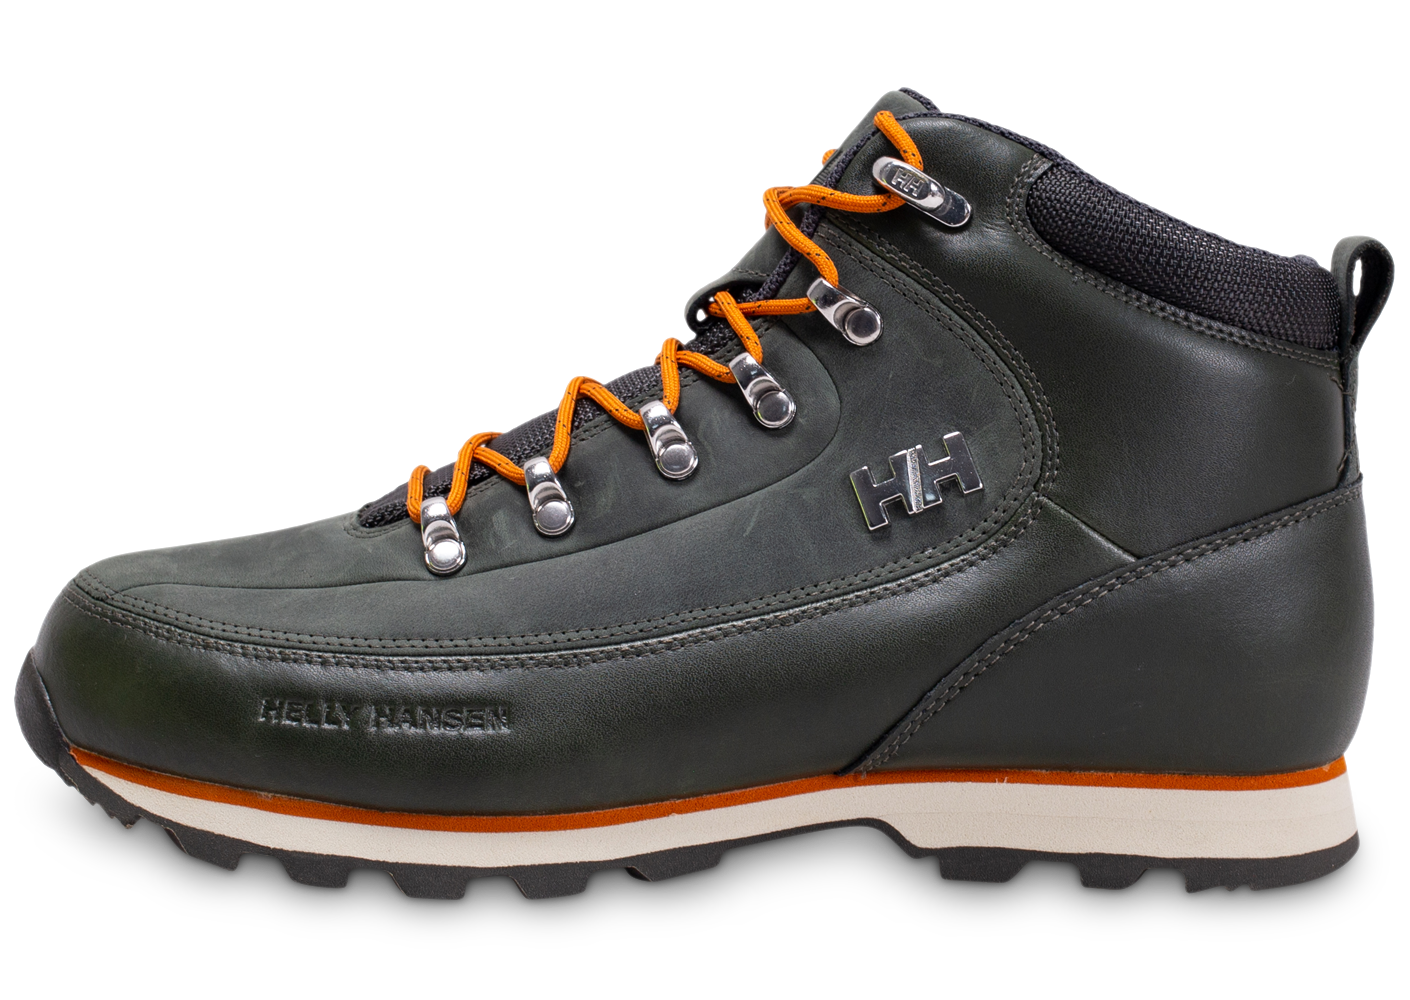 Helly Hansen Homme The Forester Kaki Boots